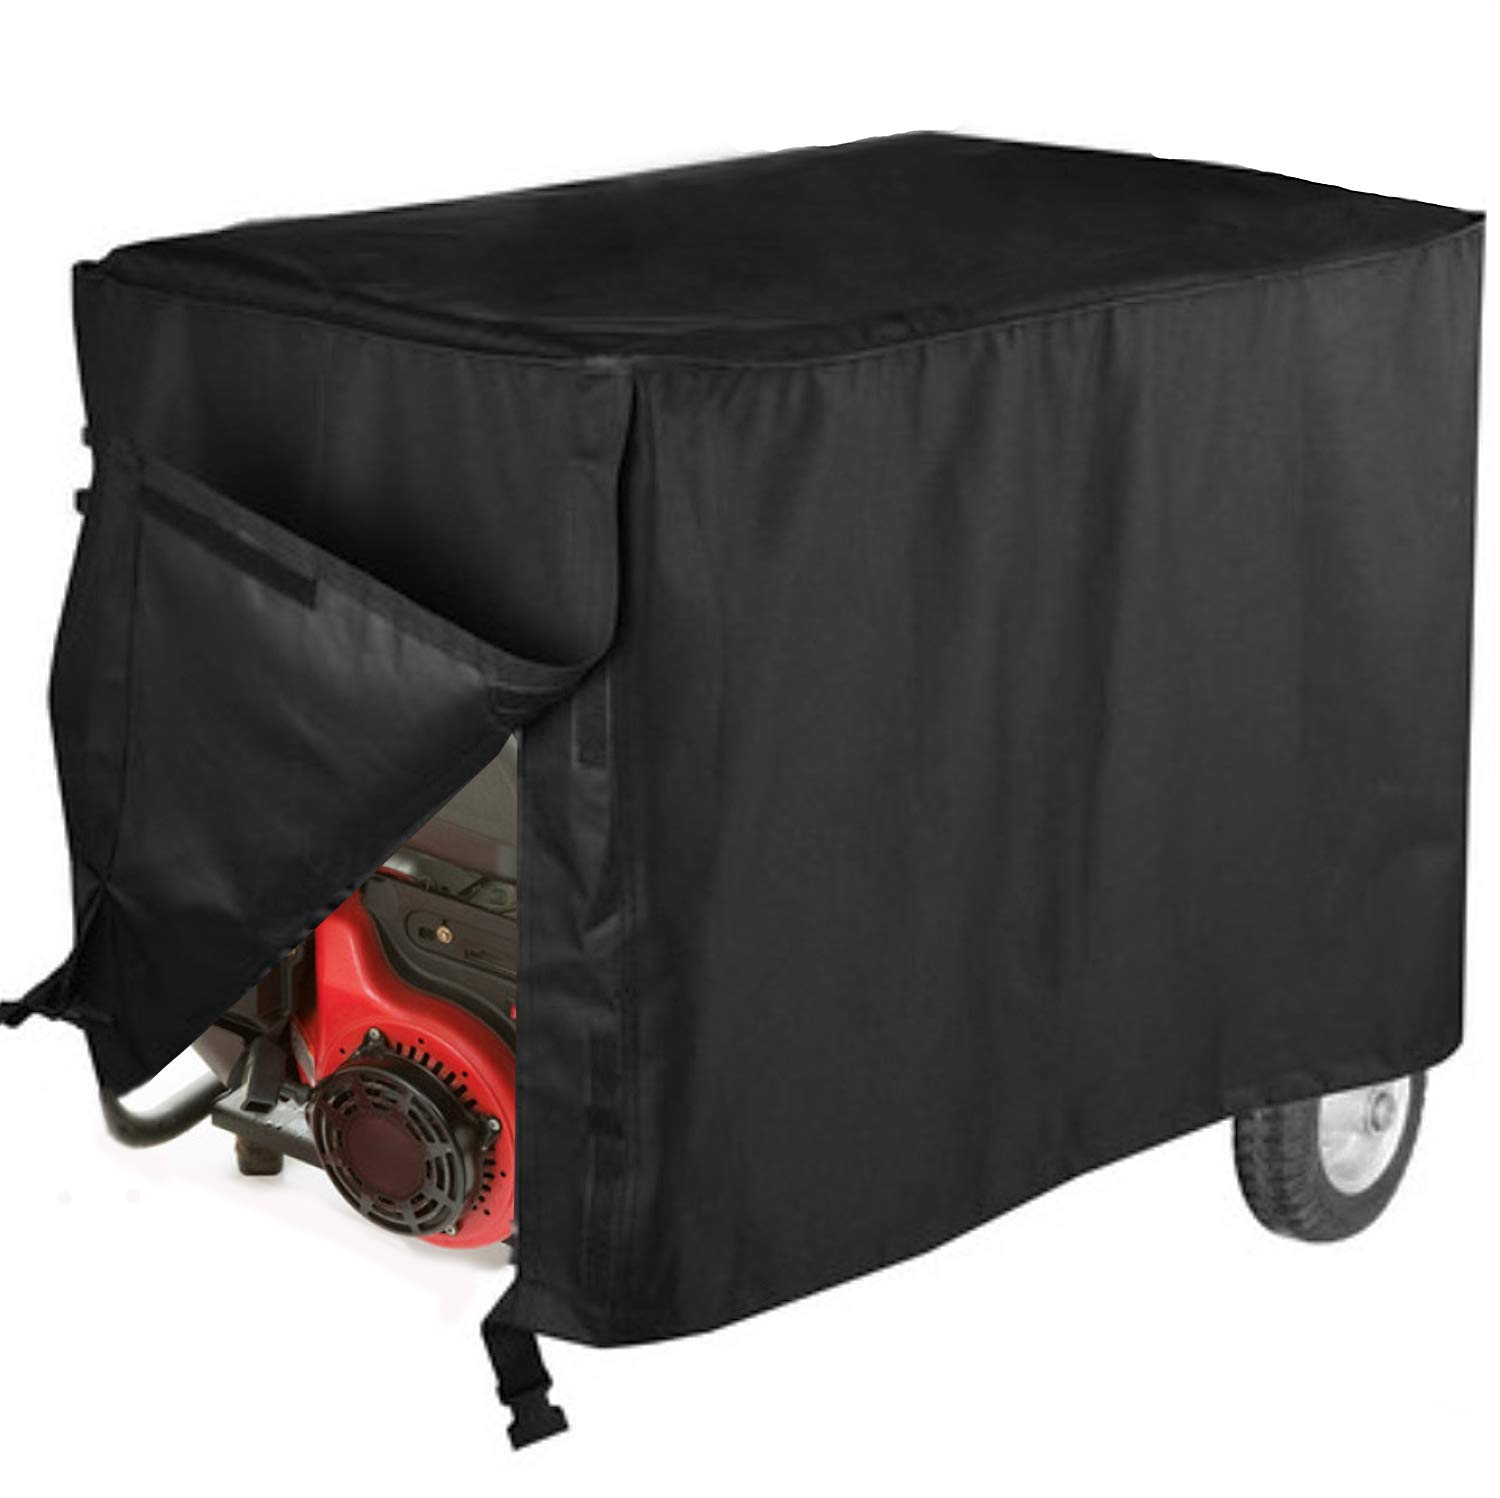 Yqbuy Universal Generator Waterproof Cover - 600D Heavy Duty Polyester Generator Cover for Most Generators, Black (38'' L x 28'' W x 30'' H)